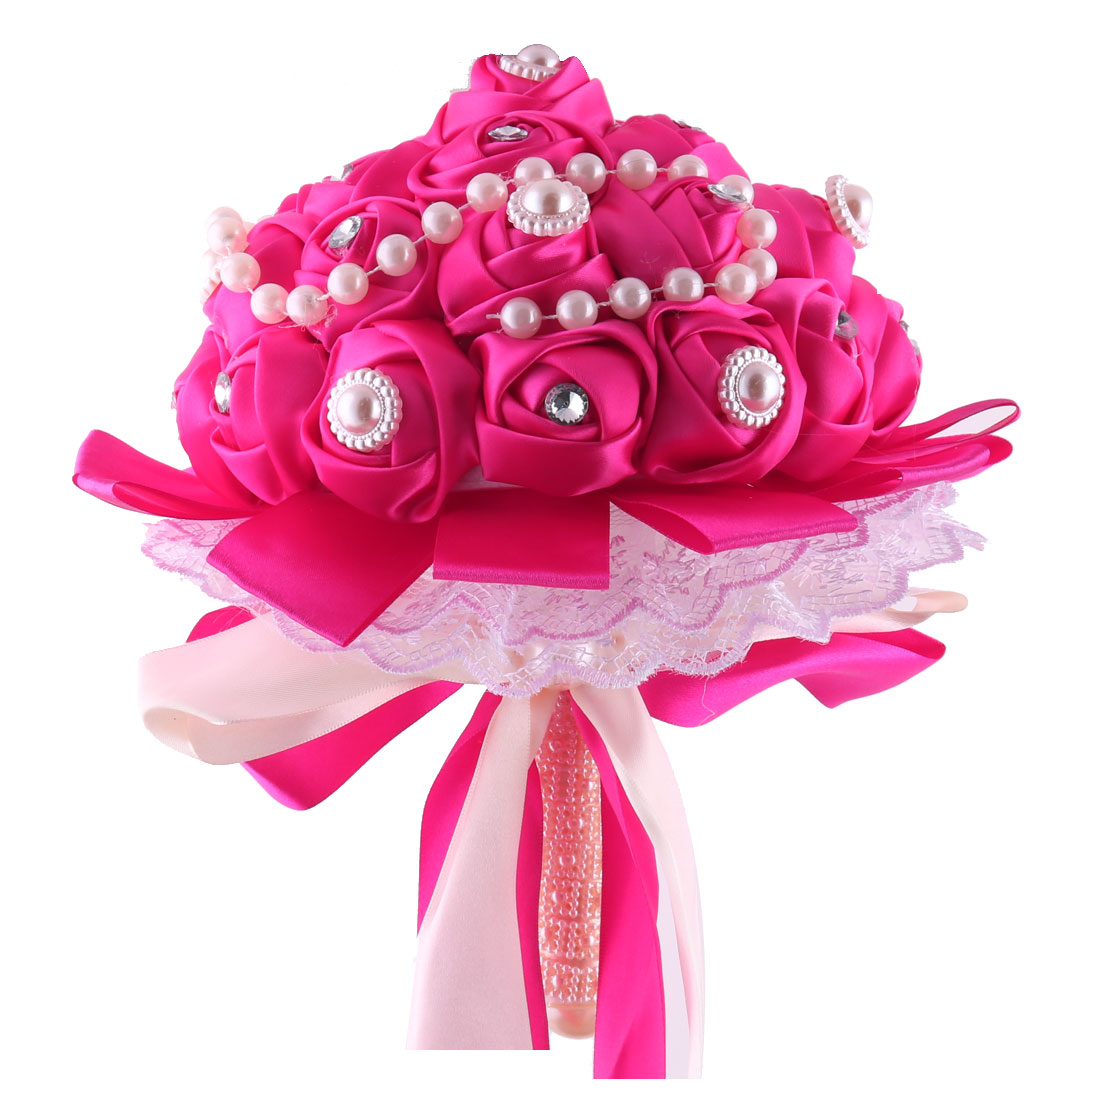 Wedding Bridesmaid Polyester Bowknot Decor Flower Handhold Bouquet Fuchsia 9 Inch Dia